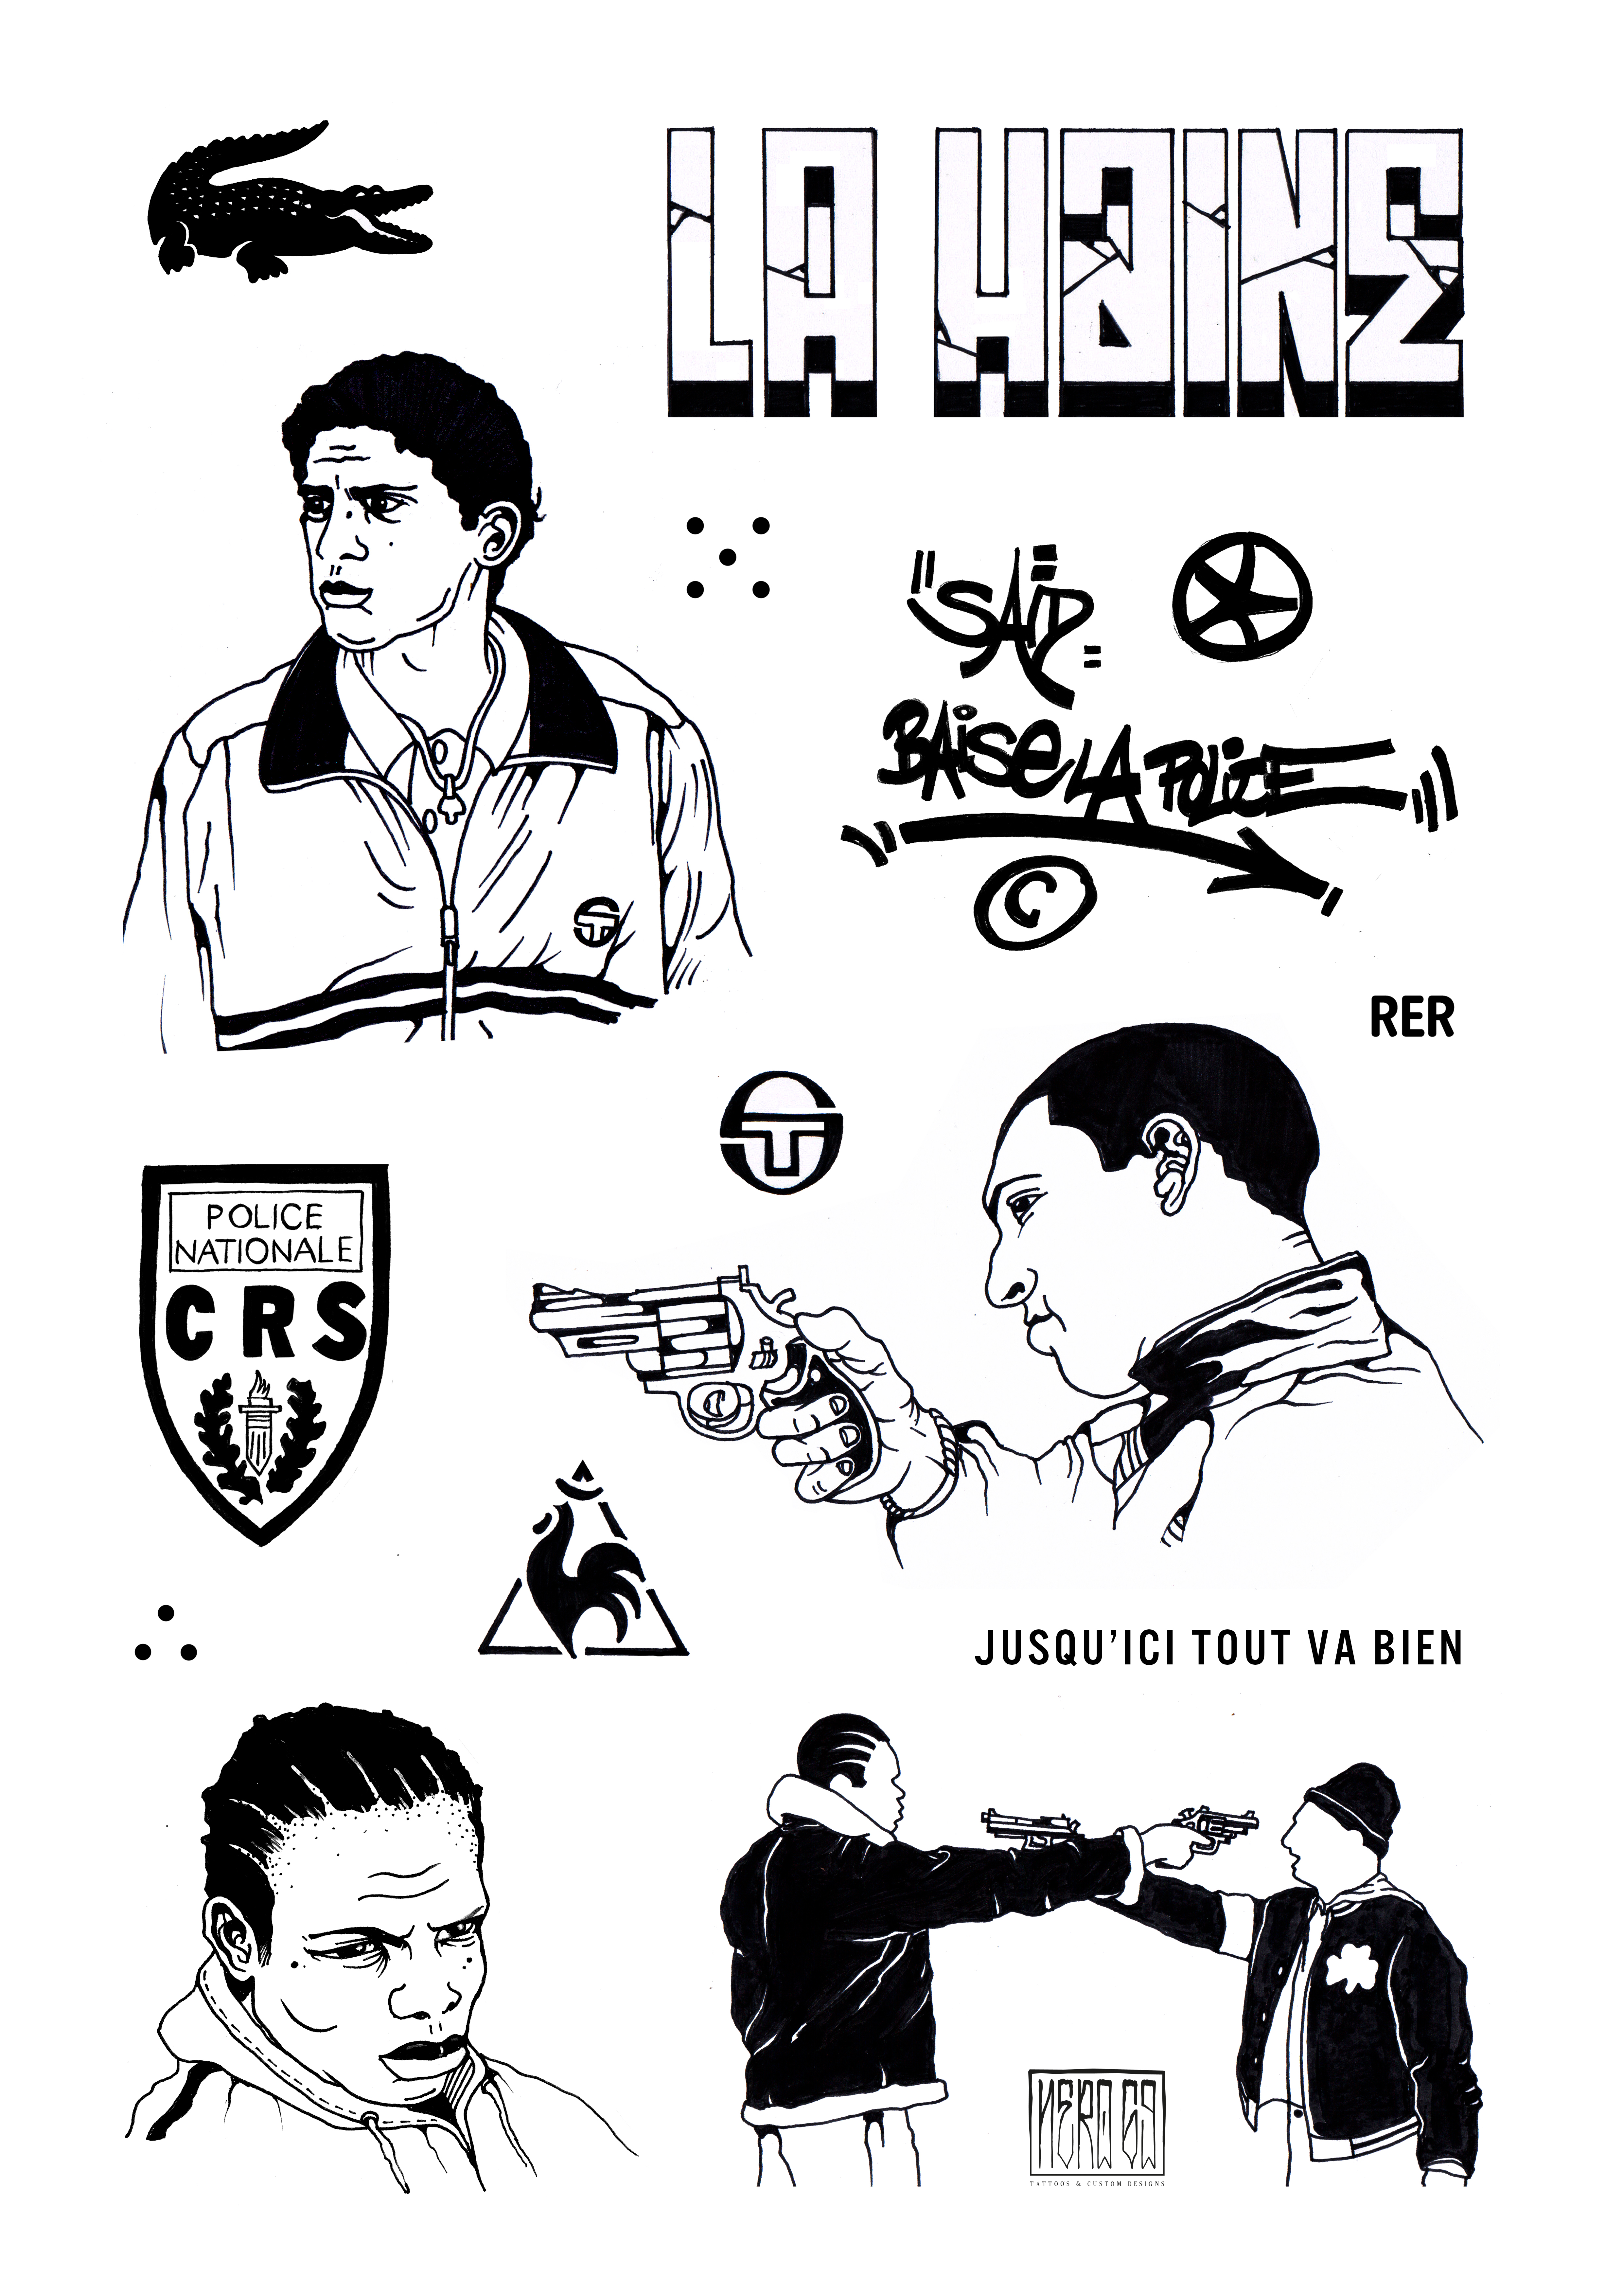 graphic design,grafik design, graffiti,illustration,berlin,post soviet,vector,vektor,sketch,la haine,hass,